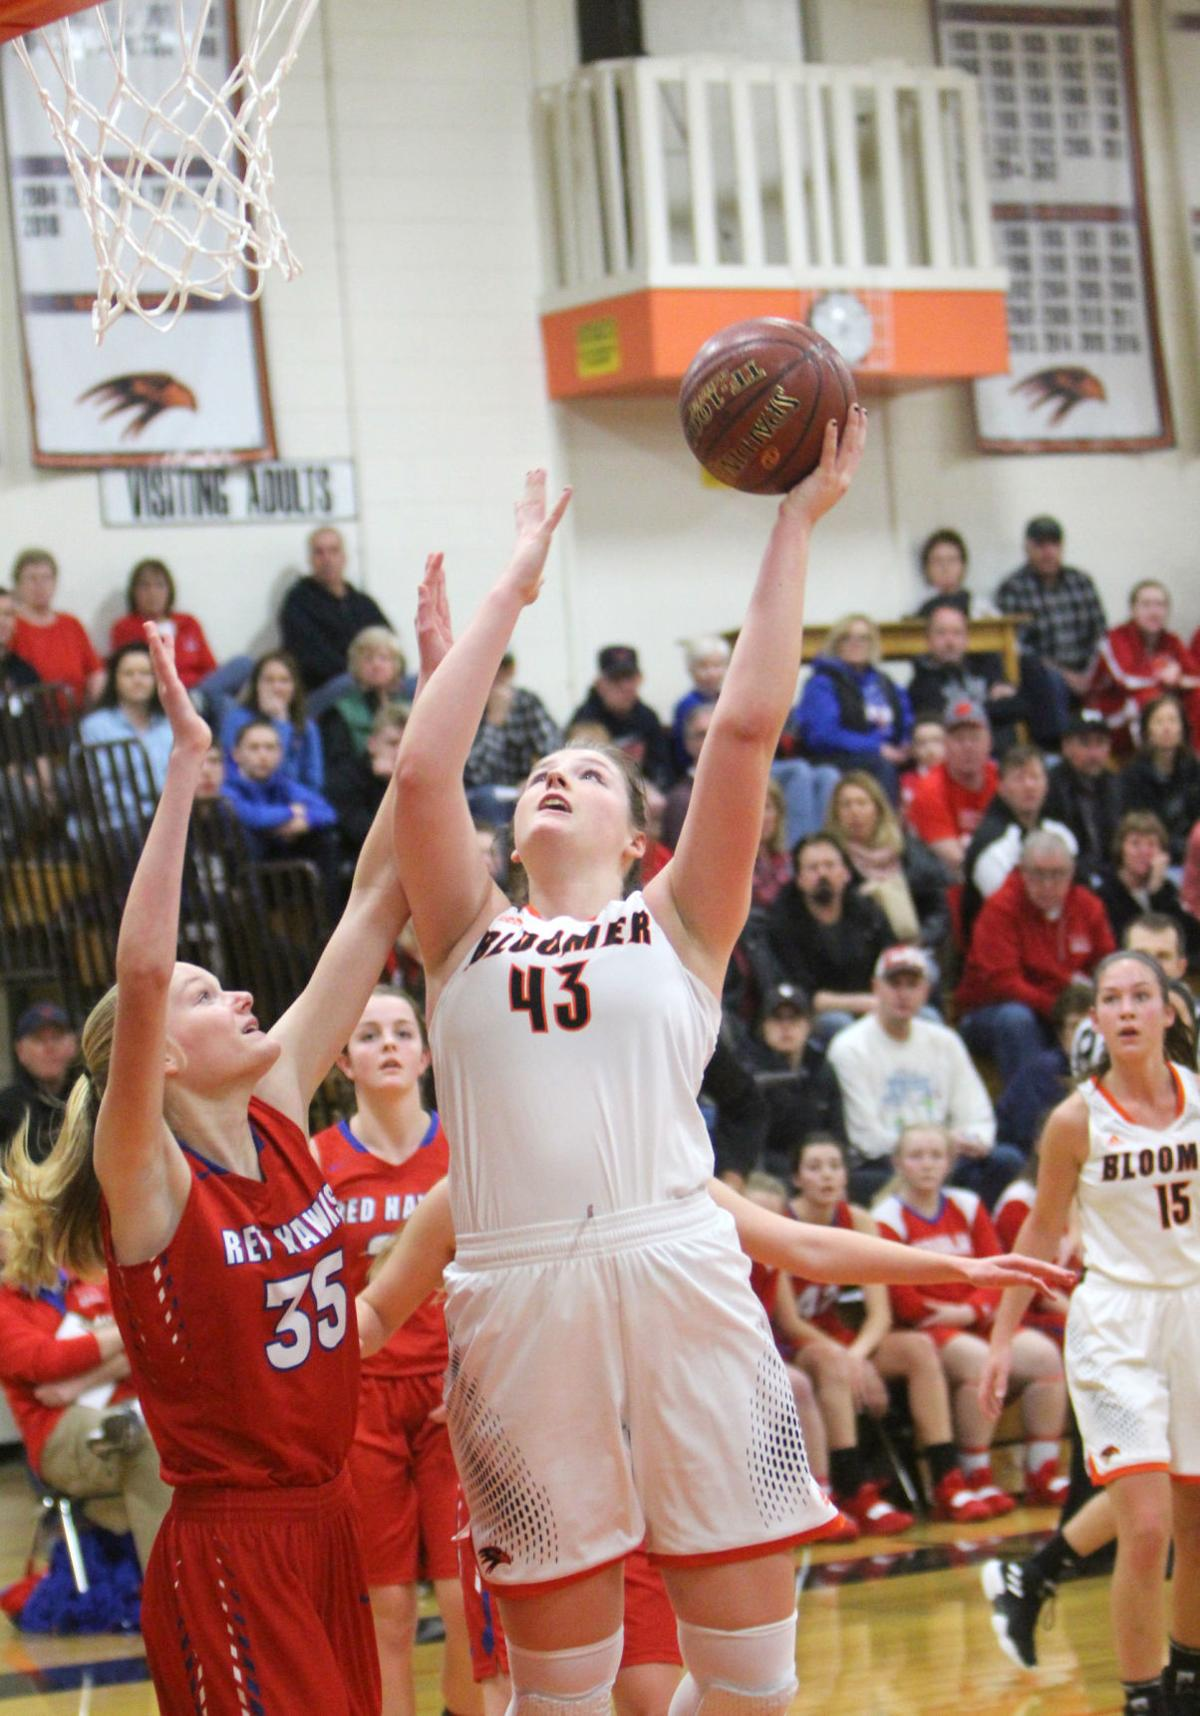 Gale-Ettrick-Trempealeau at Bloomer girls basketball 12-29-18